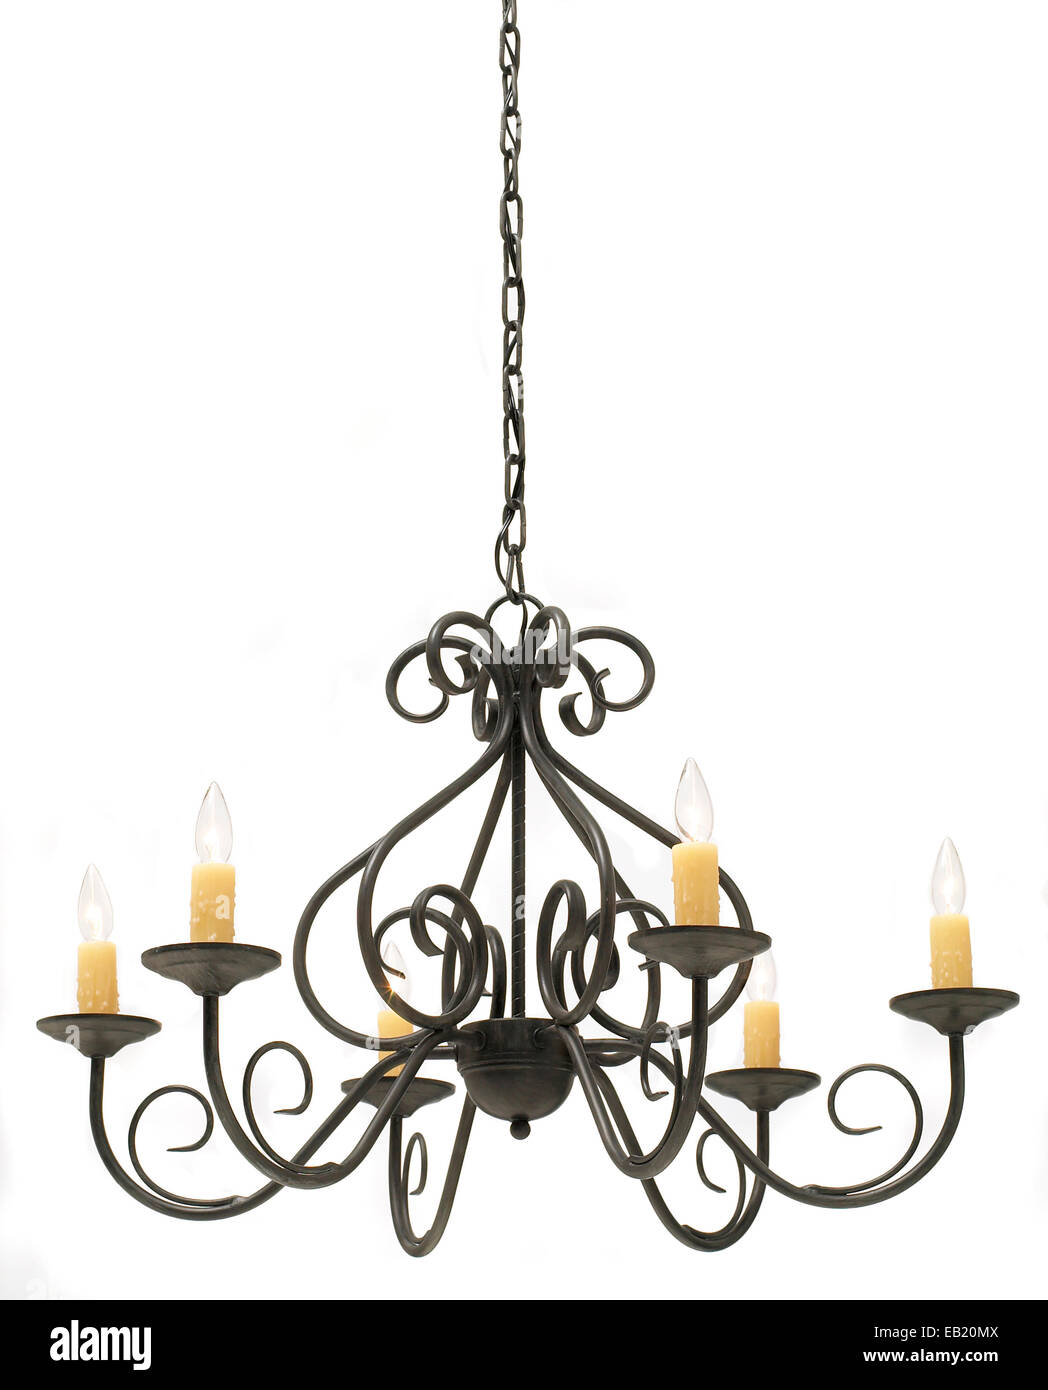 iron chandelier with fake candles by chandra - Stock Image